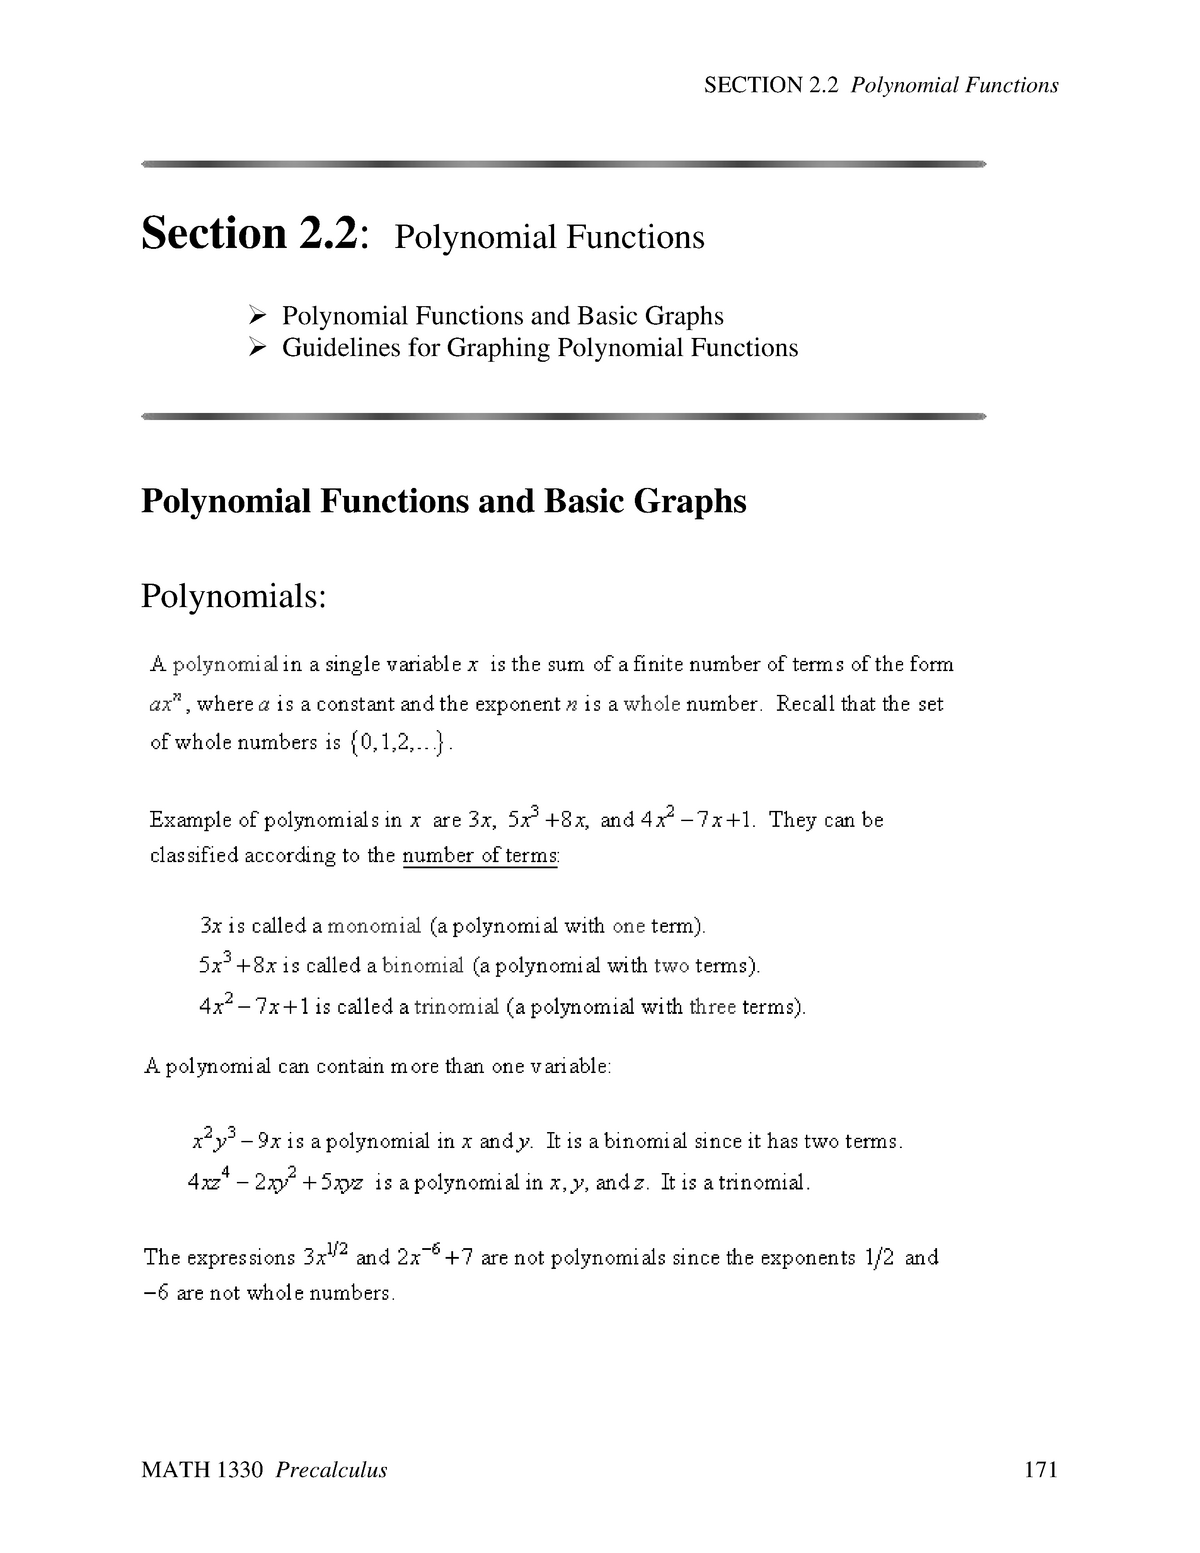 Polynomial Functions - Section 2 2 - MATH 1330: Precalculus - StuDocu